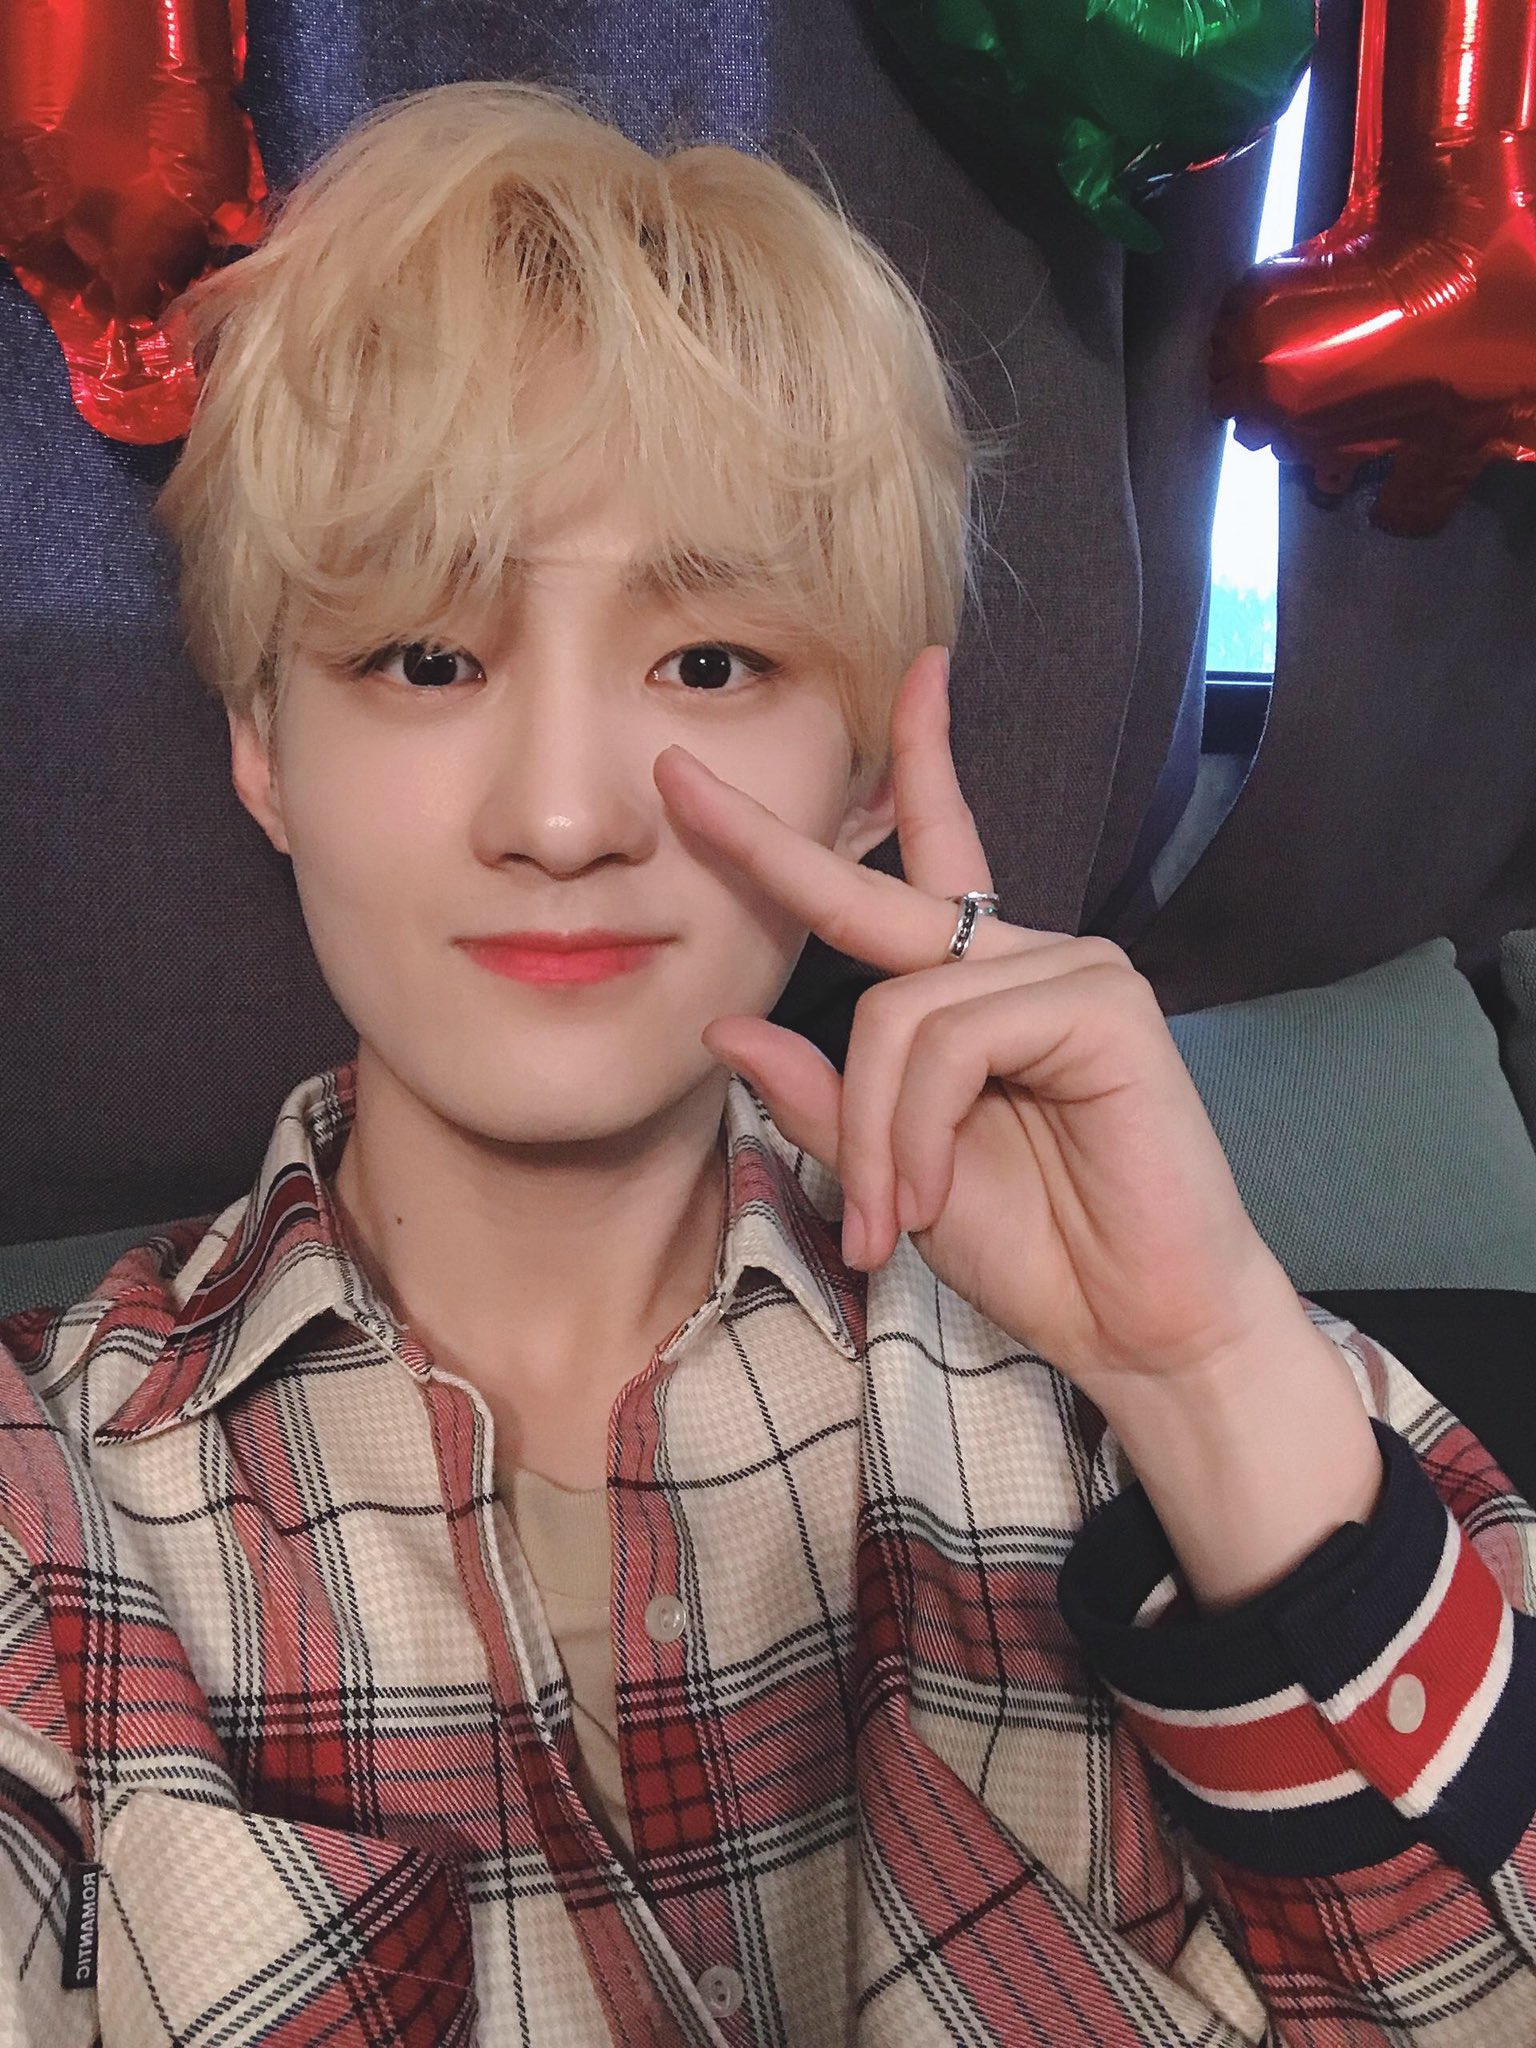 verivery yongseung @the_verivery